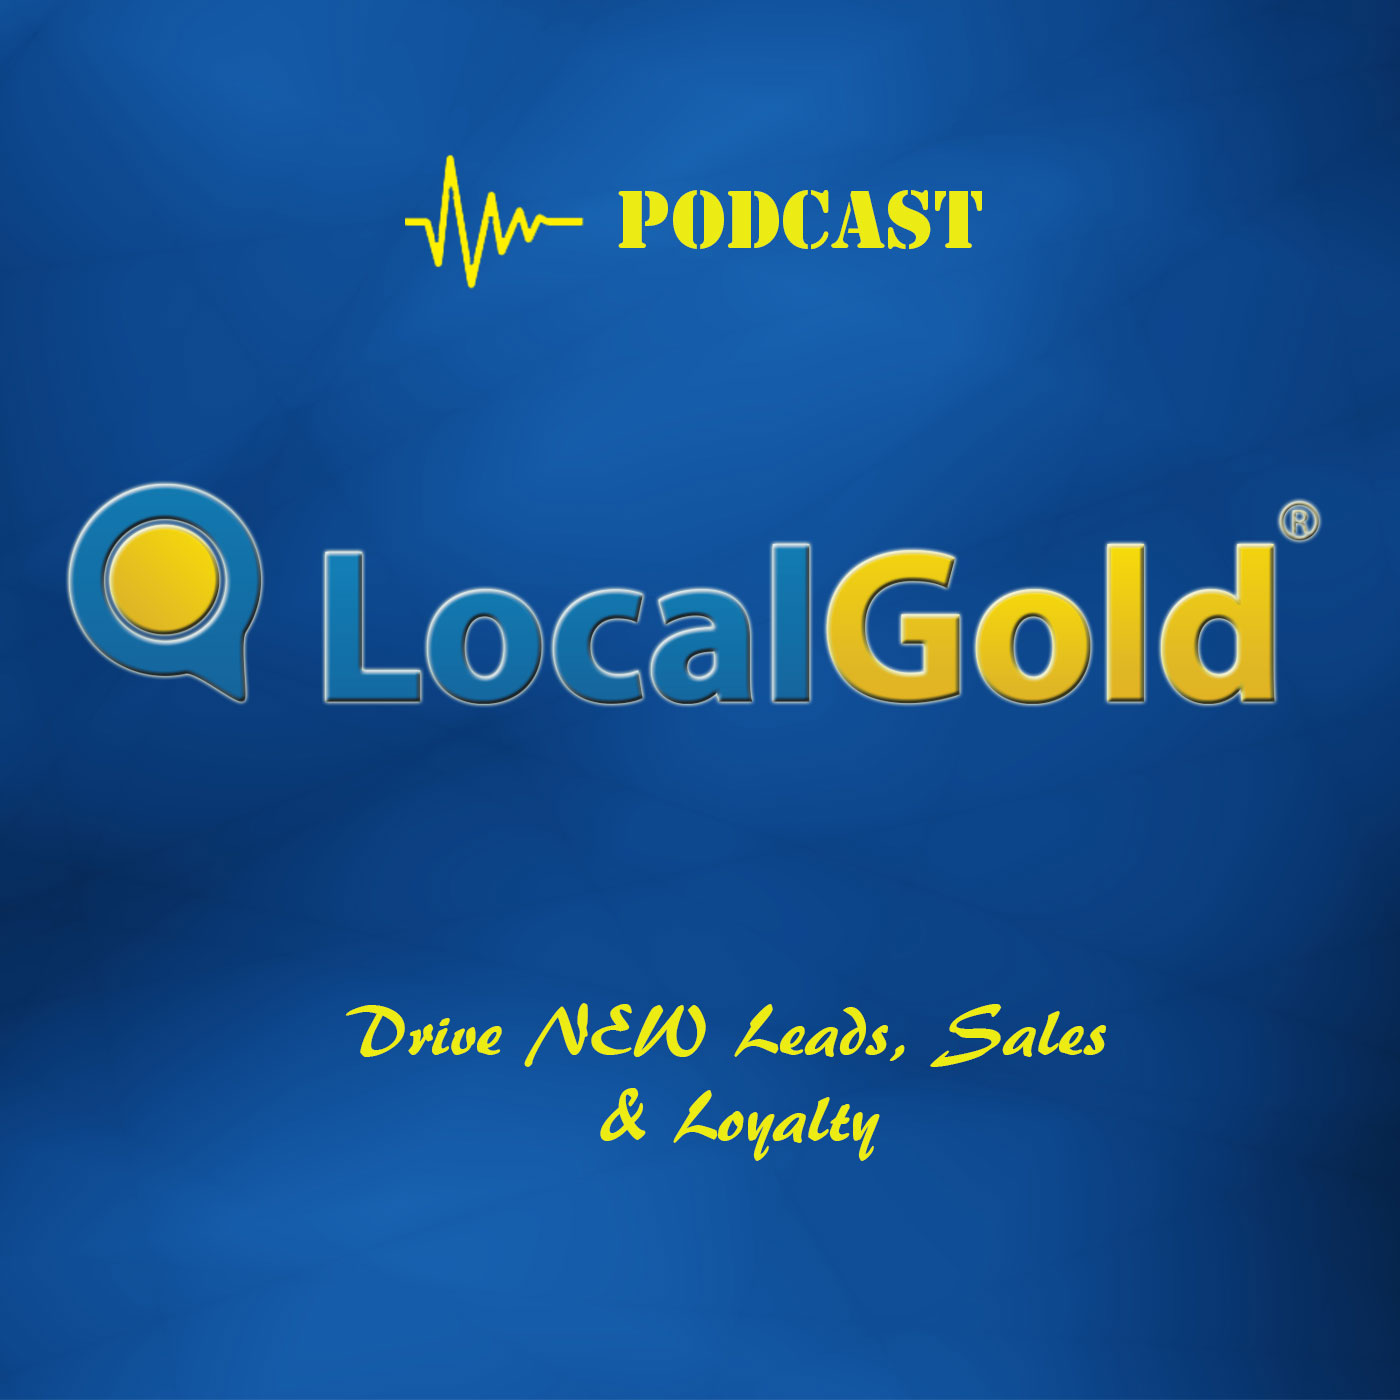 Local Gold Podcast